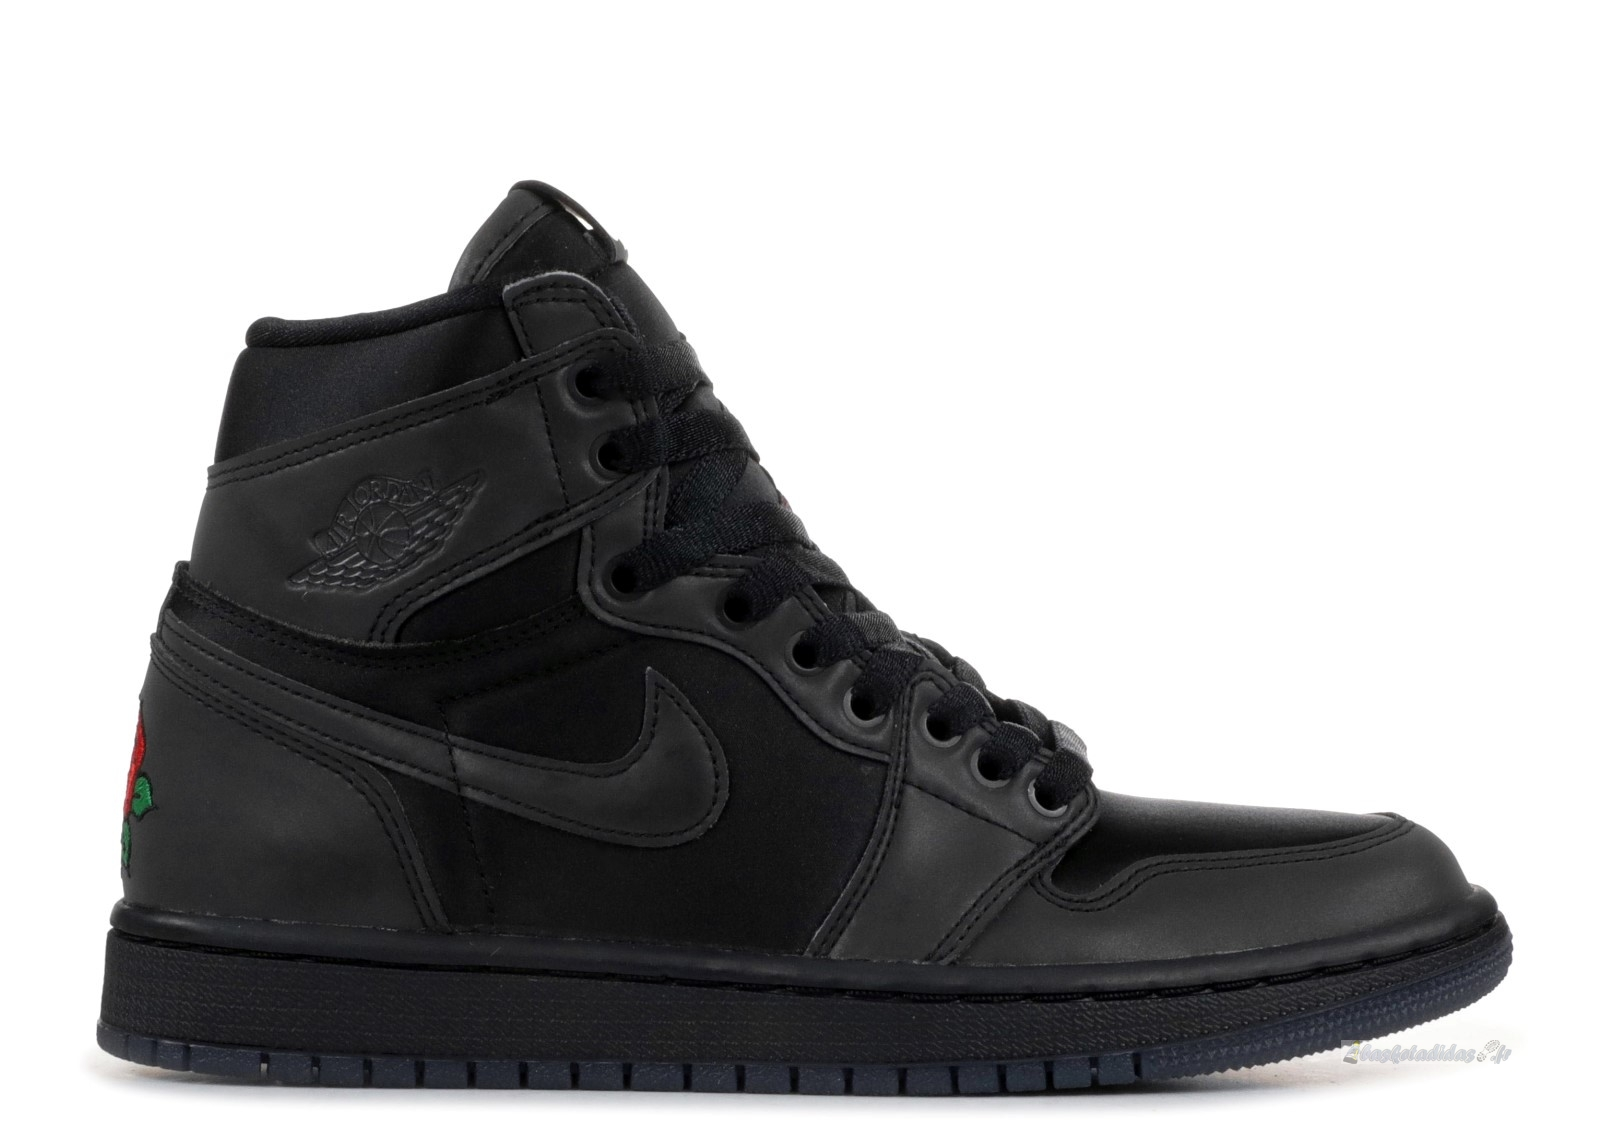 "Chaussure de Basket Air Jordan 1 Femme Retro High ""Rox Brown"" Noir (bv1576-001)"